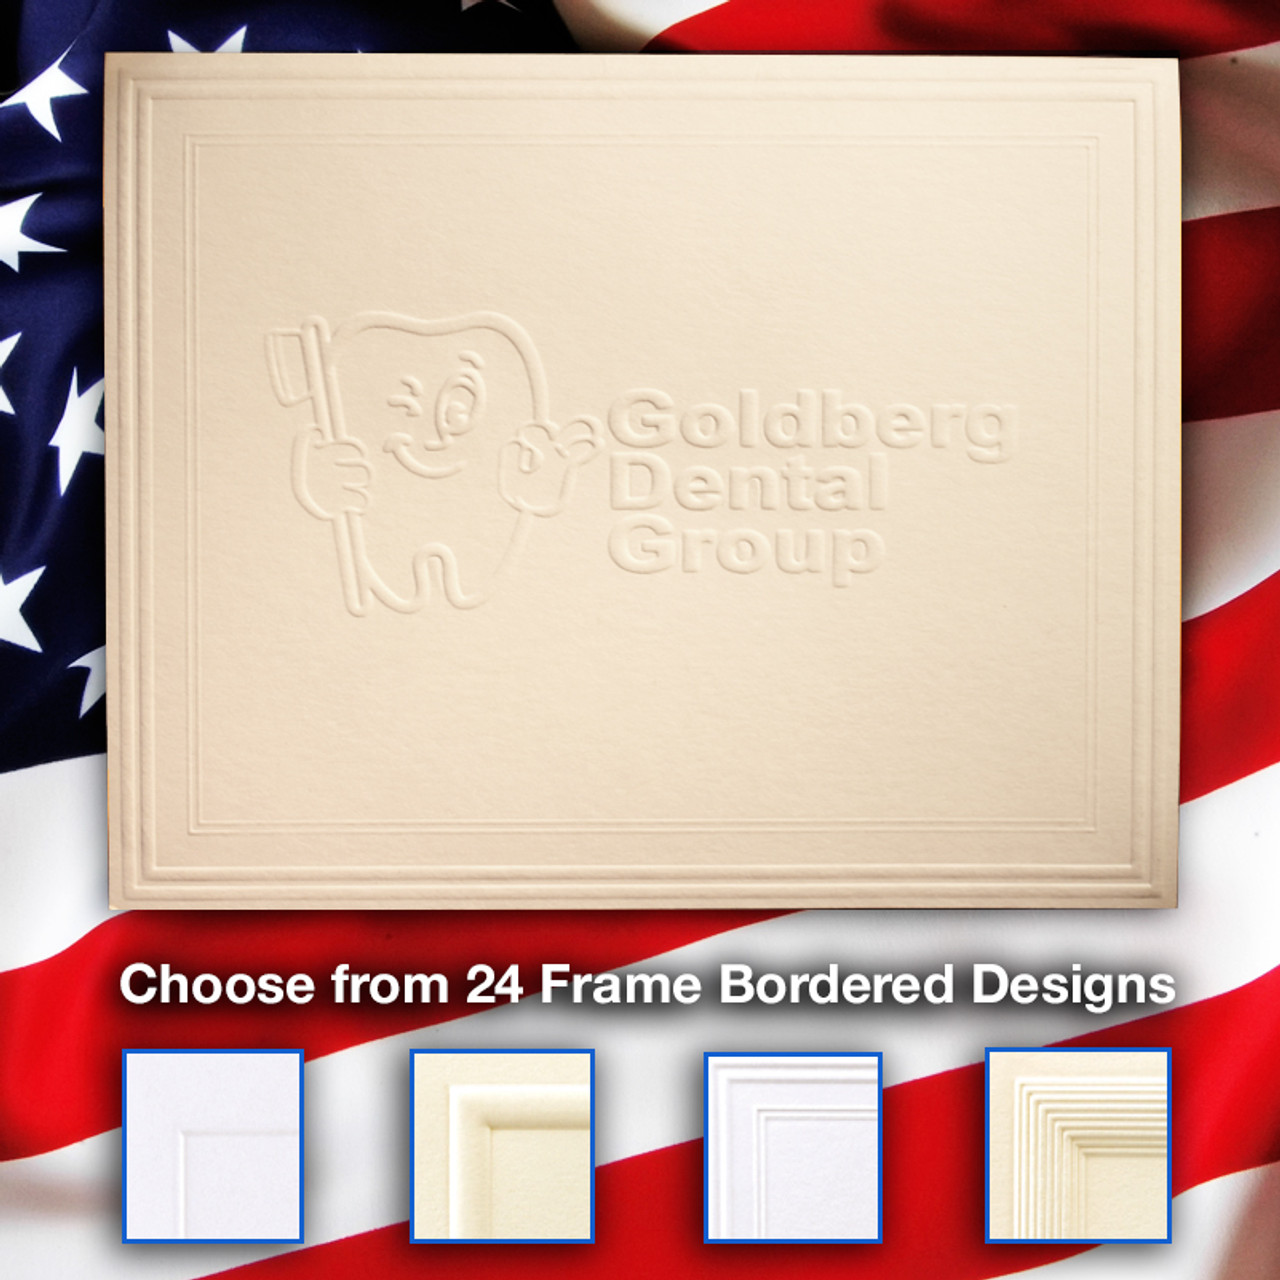 your logo custom embossed on folded notes 24 border designs